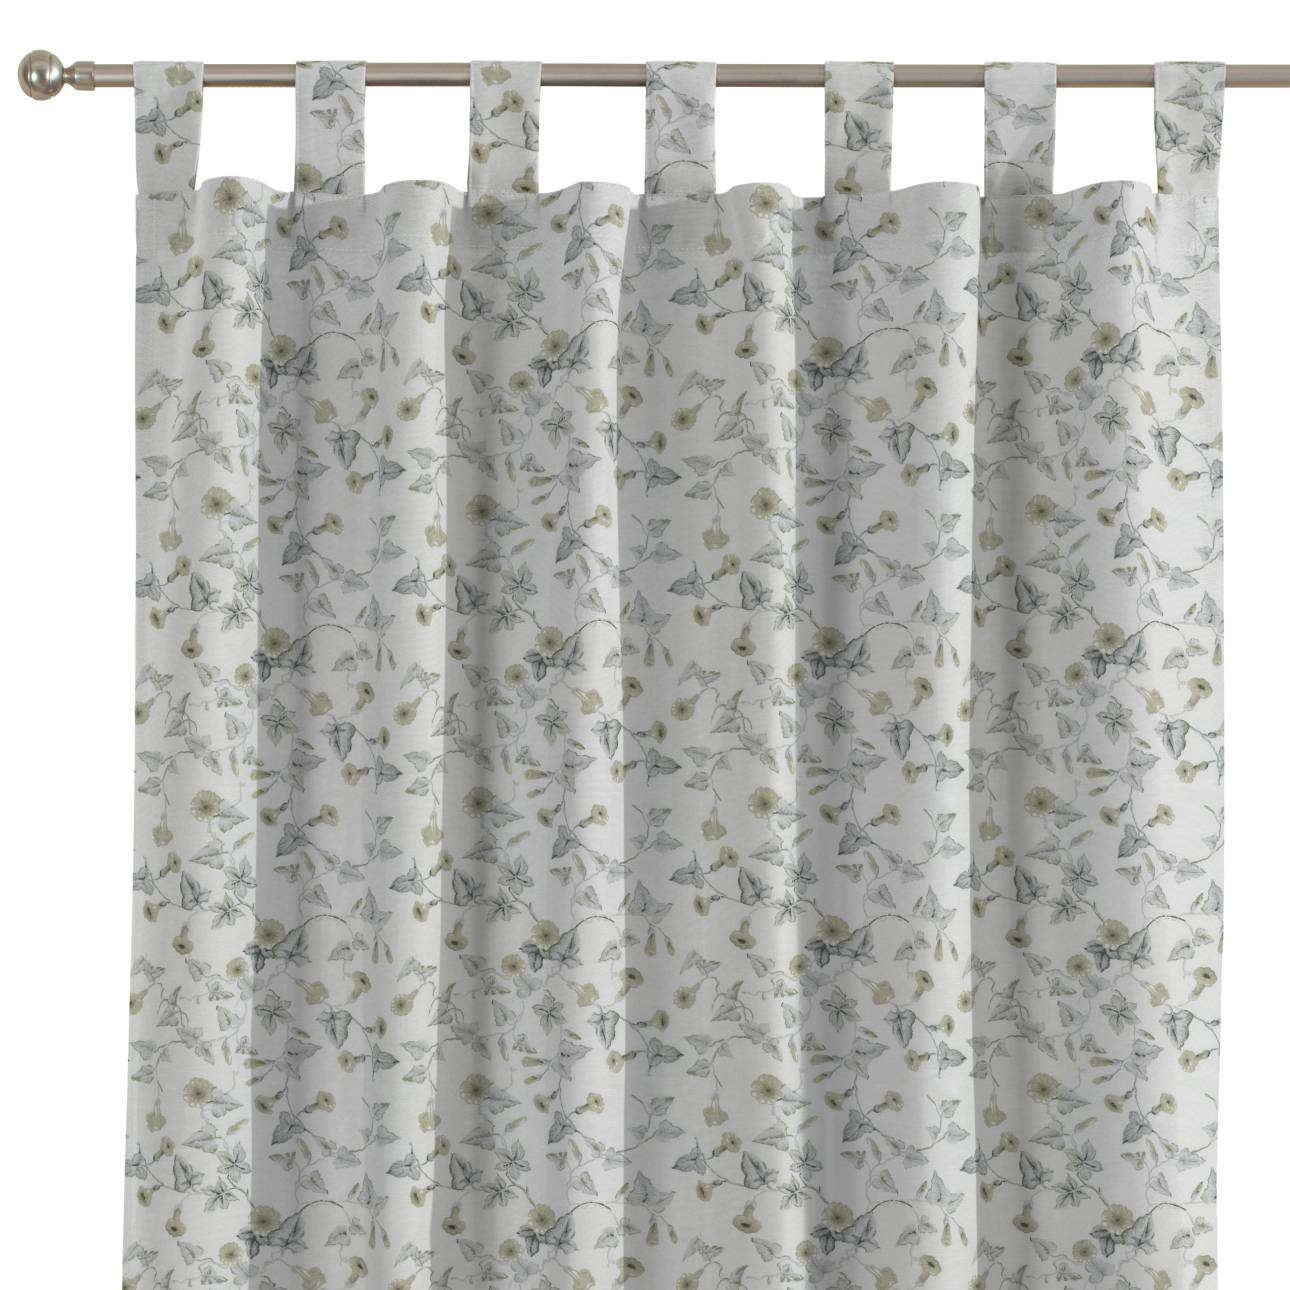 Tab top curtains 130 x 260 cm (51 x 102 inch) in collection Mirella, fabric: 140-42